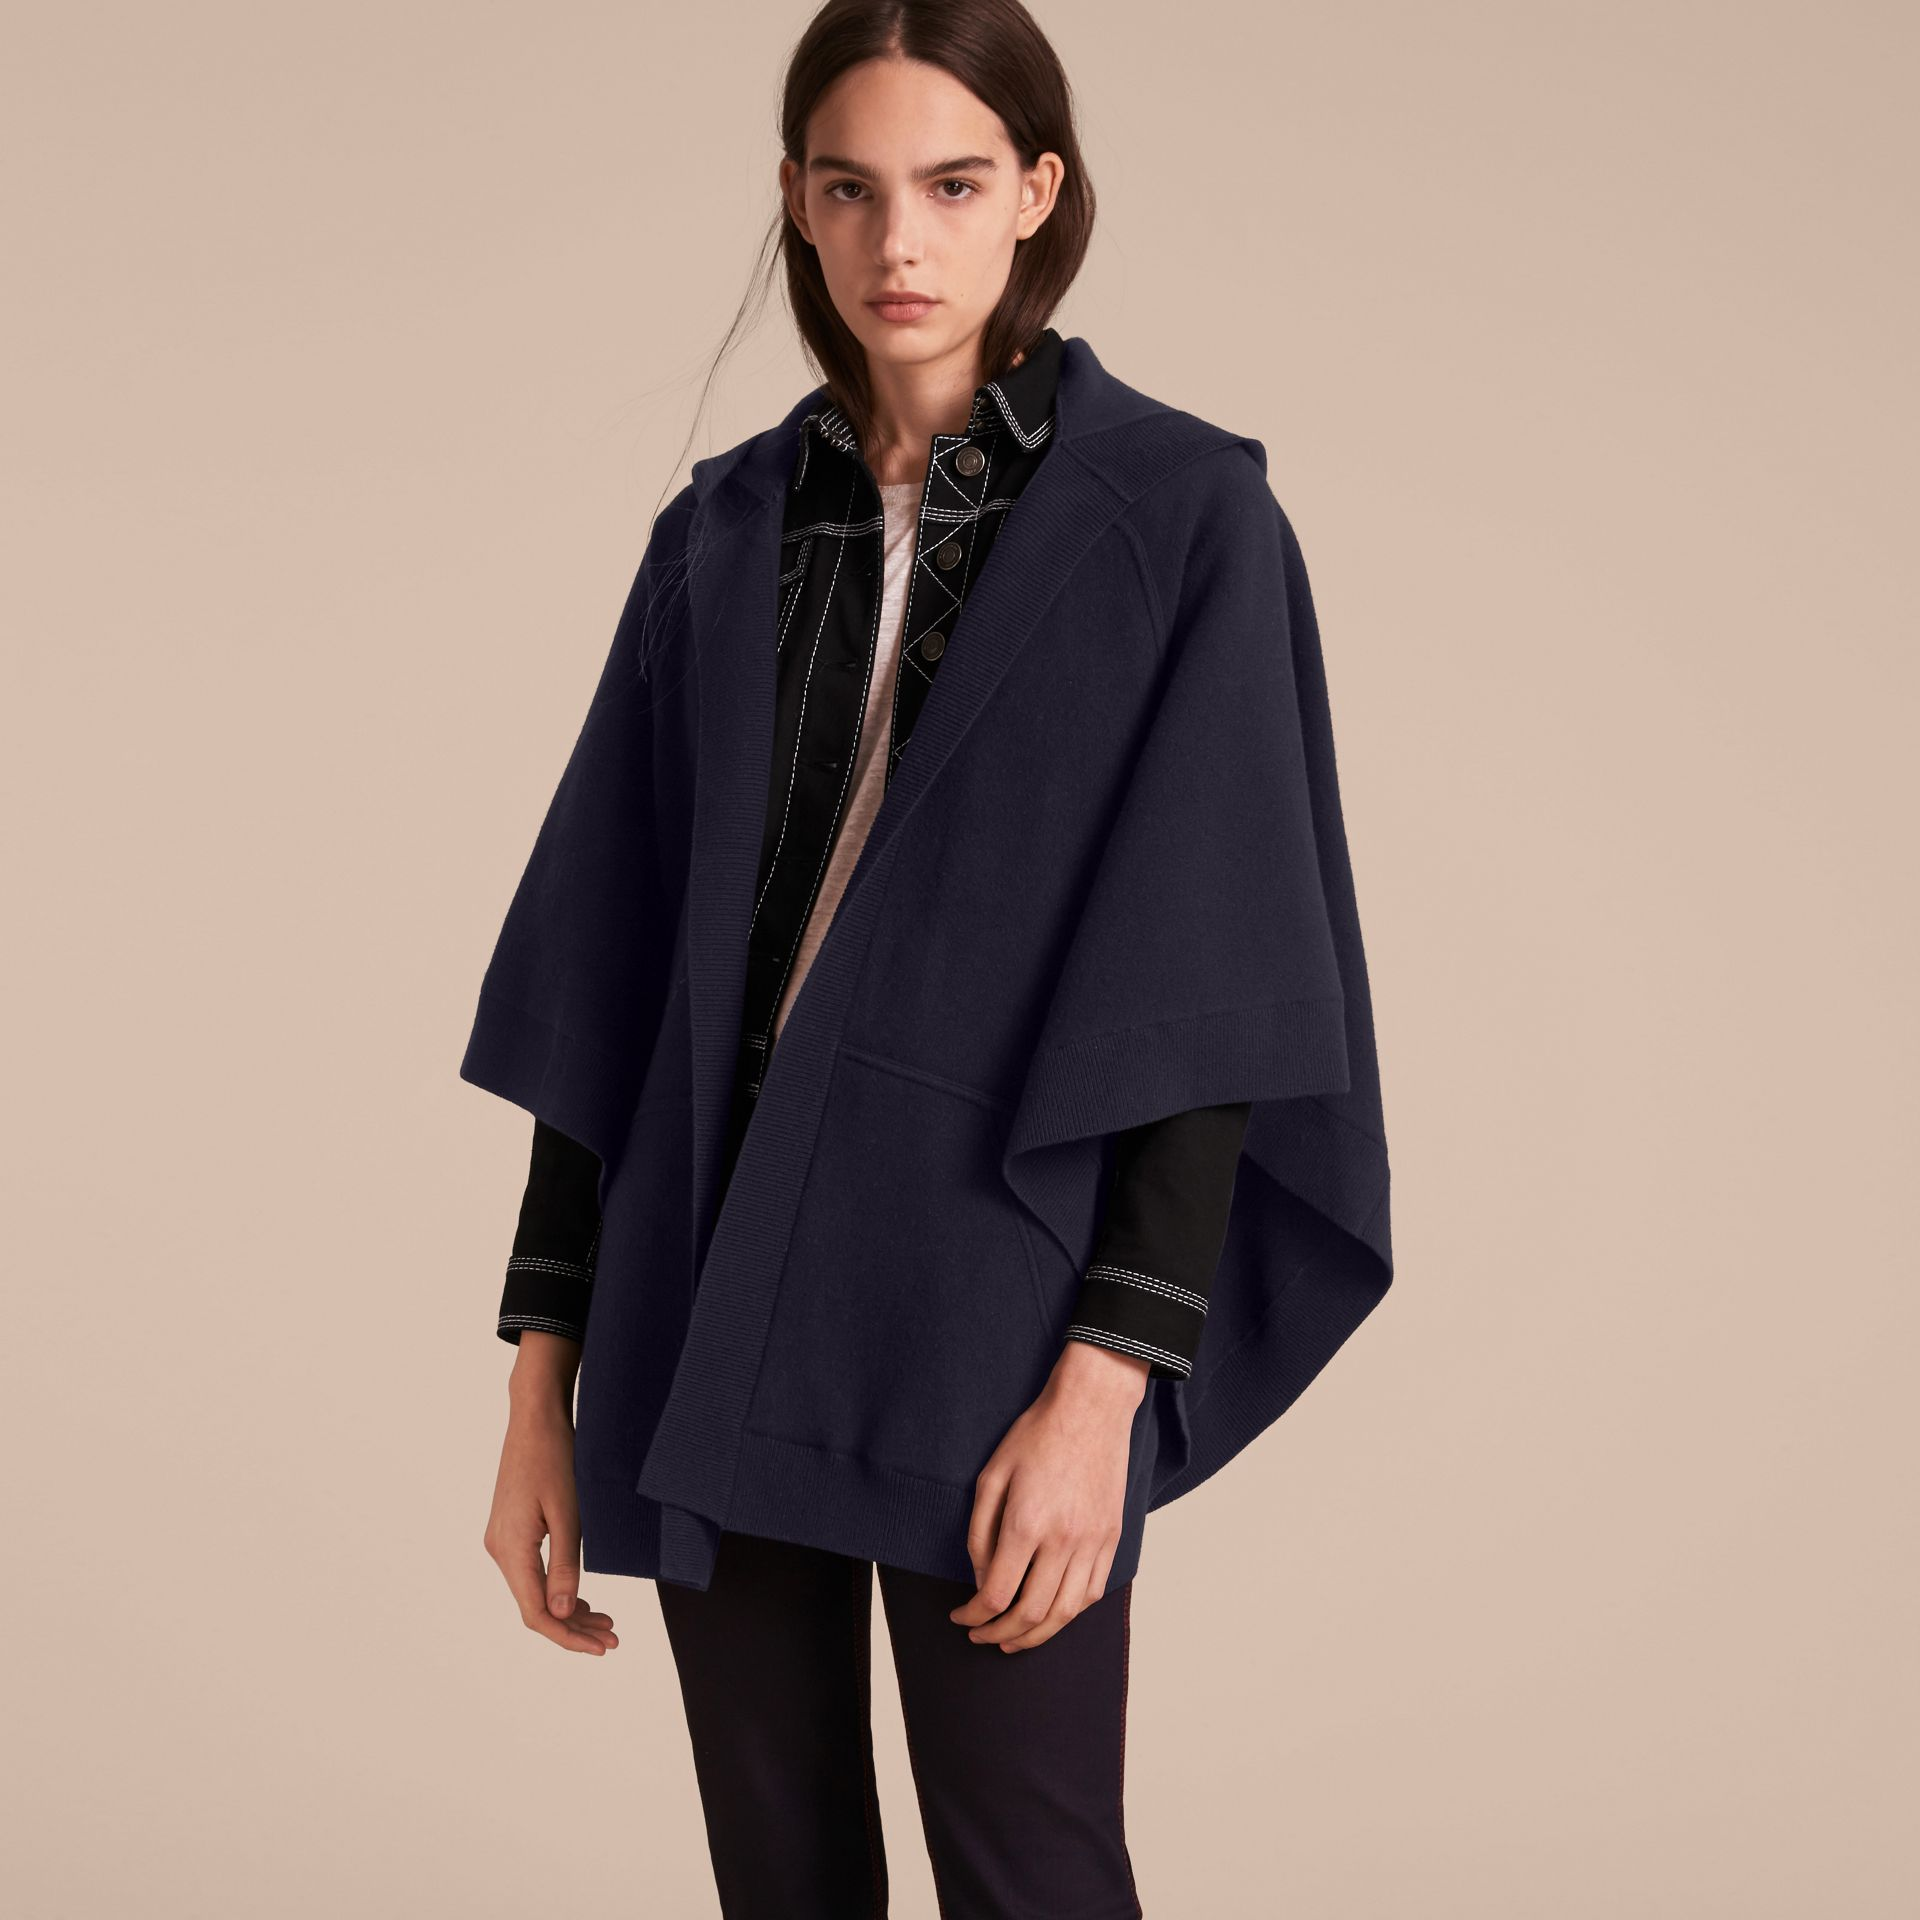 Wool Cashmere Blend Hooded Poncho in Navy/black - Women | Burberry Hong Kong - gallery image 5